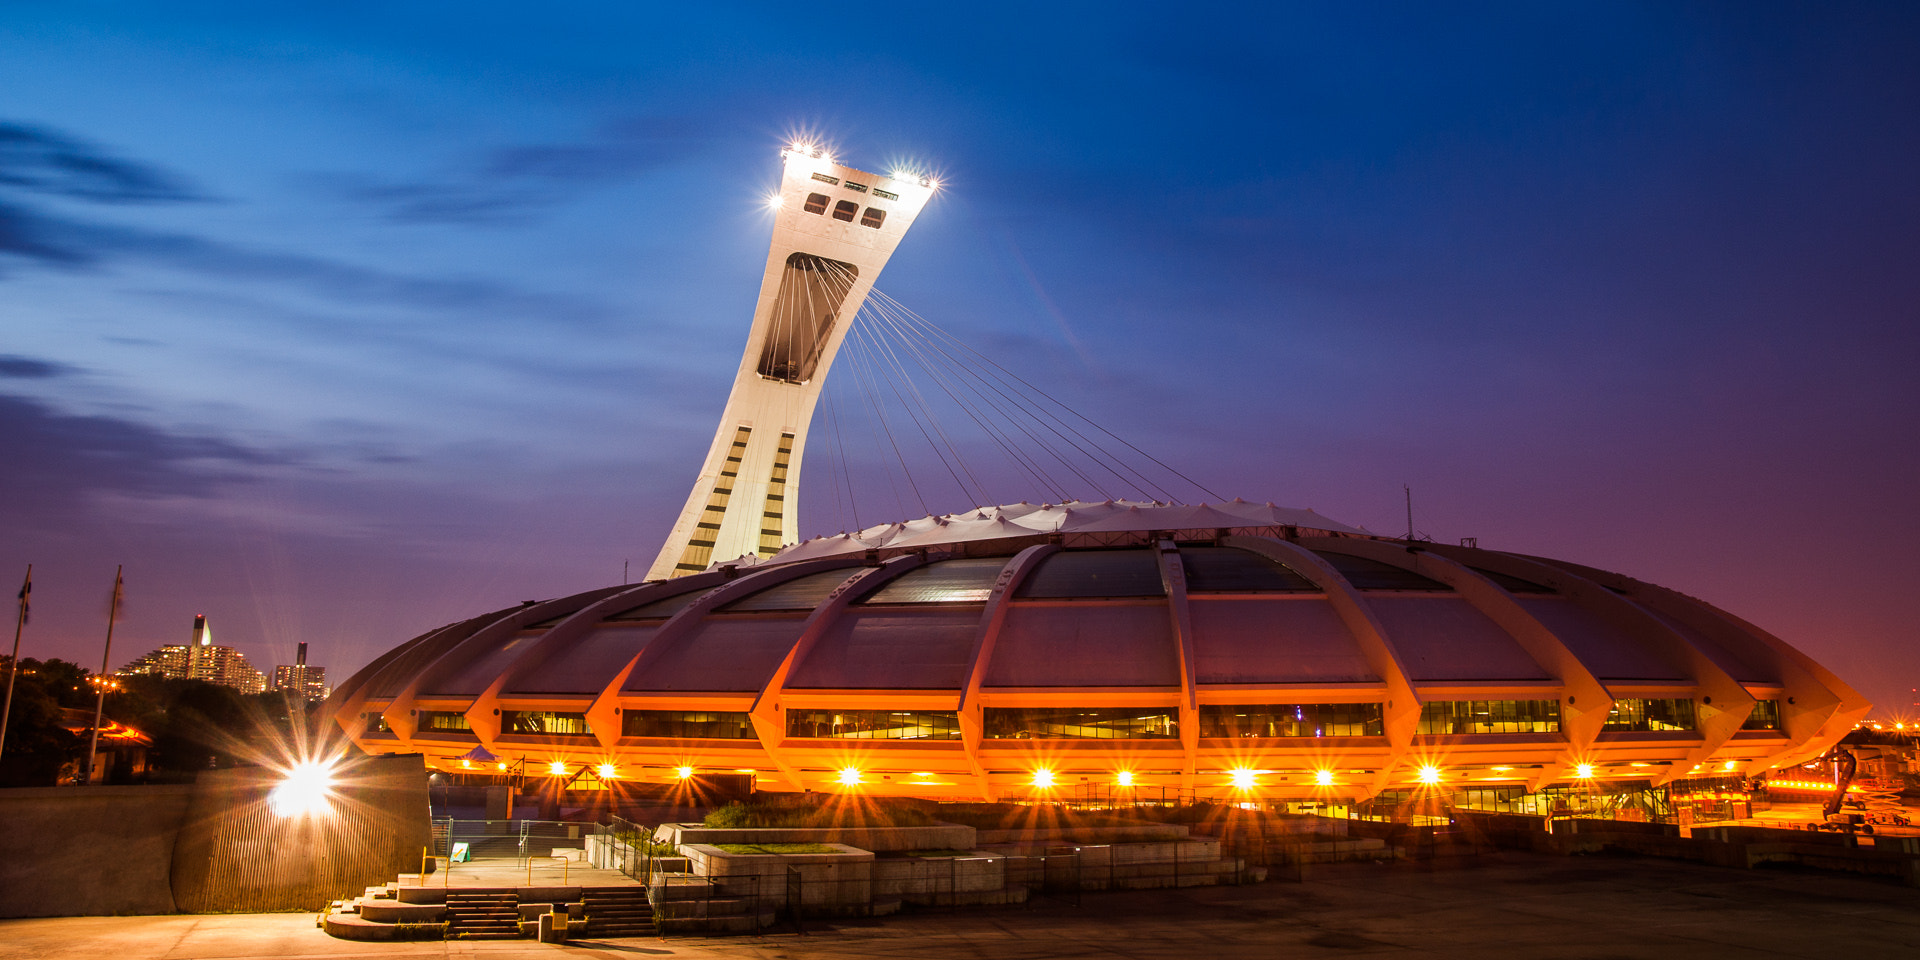 Photograph Stade Olympique by Vaidas Mišeikis on 500px